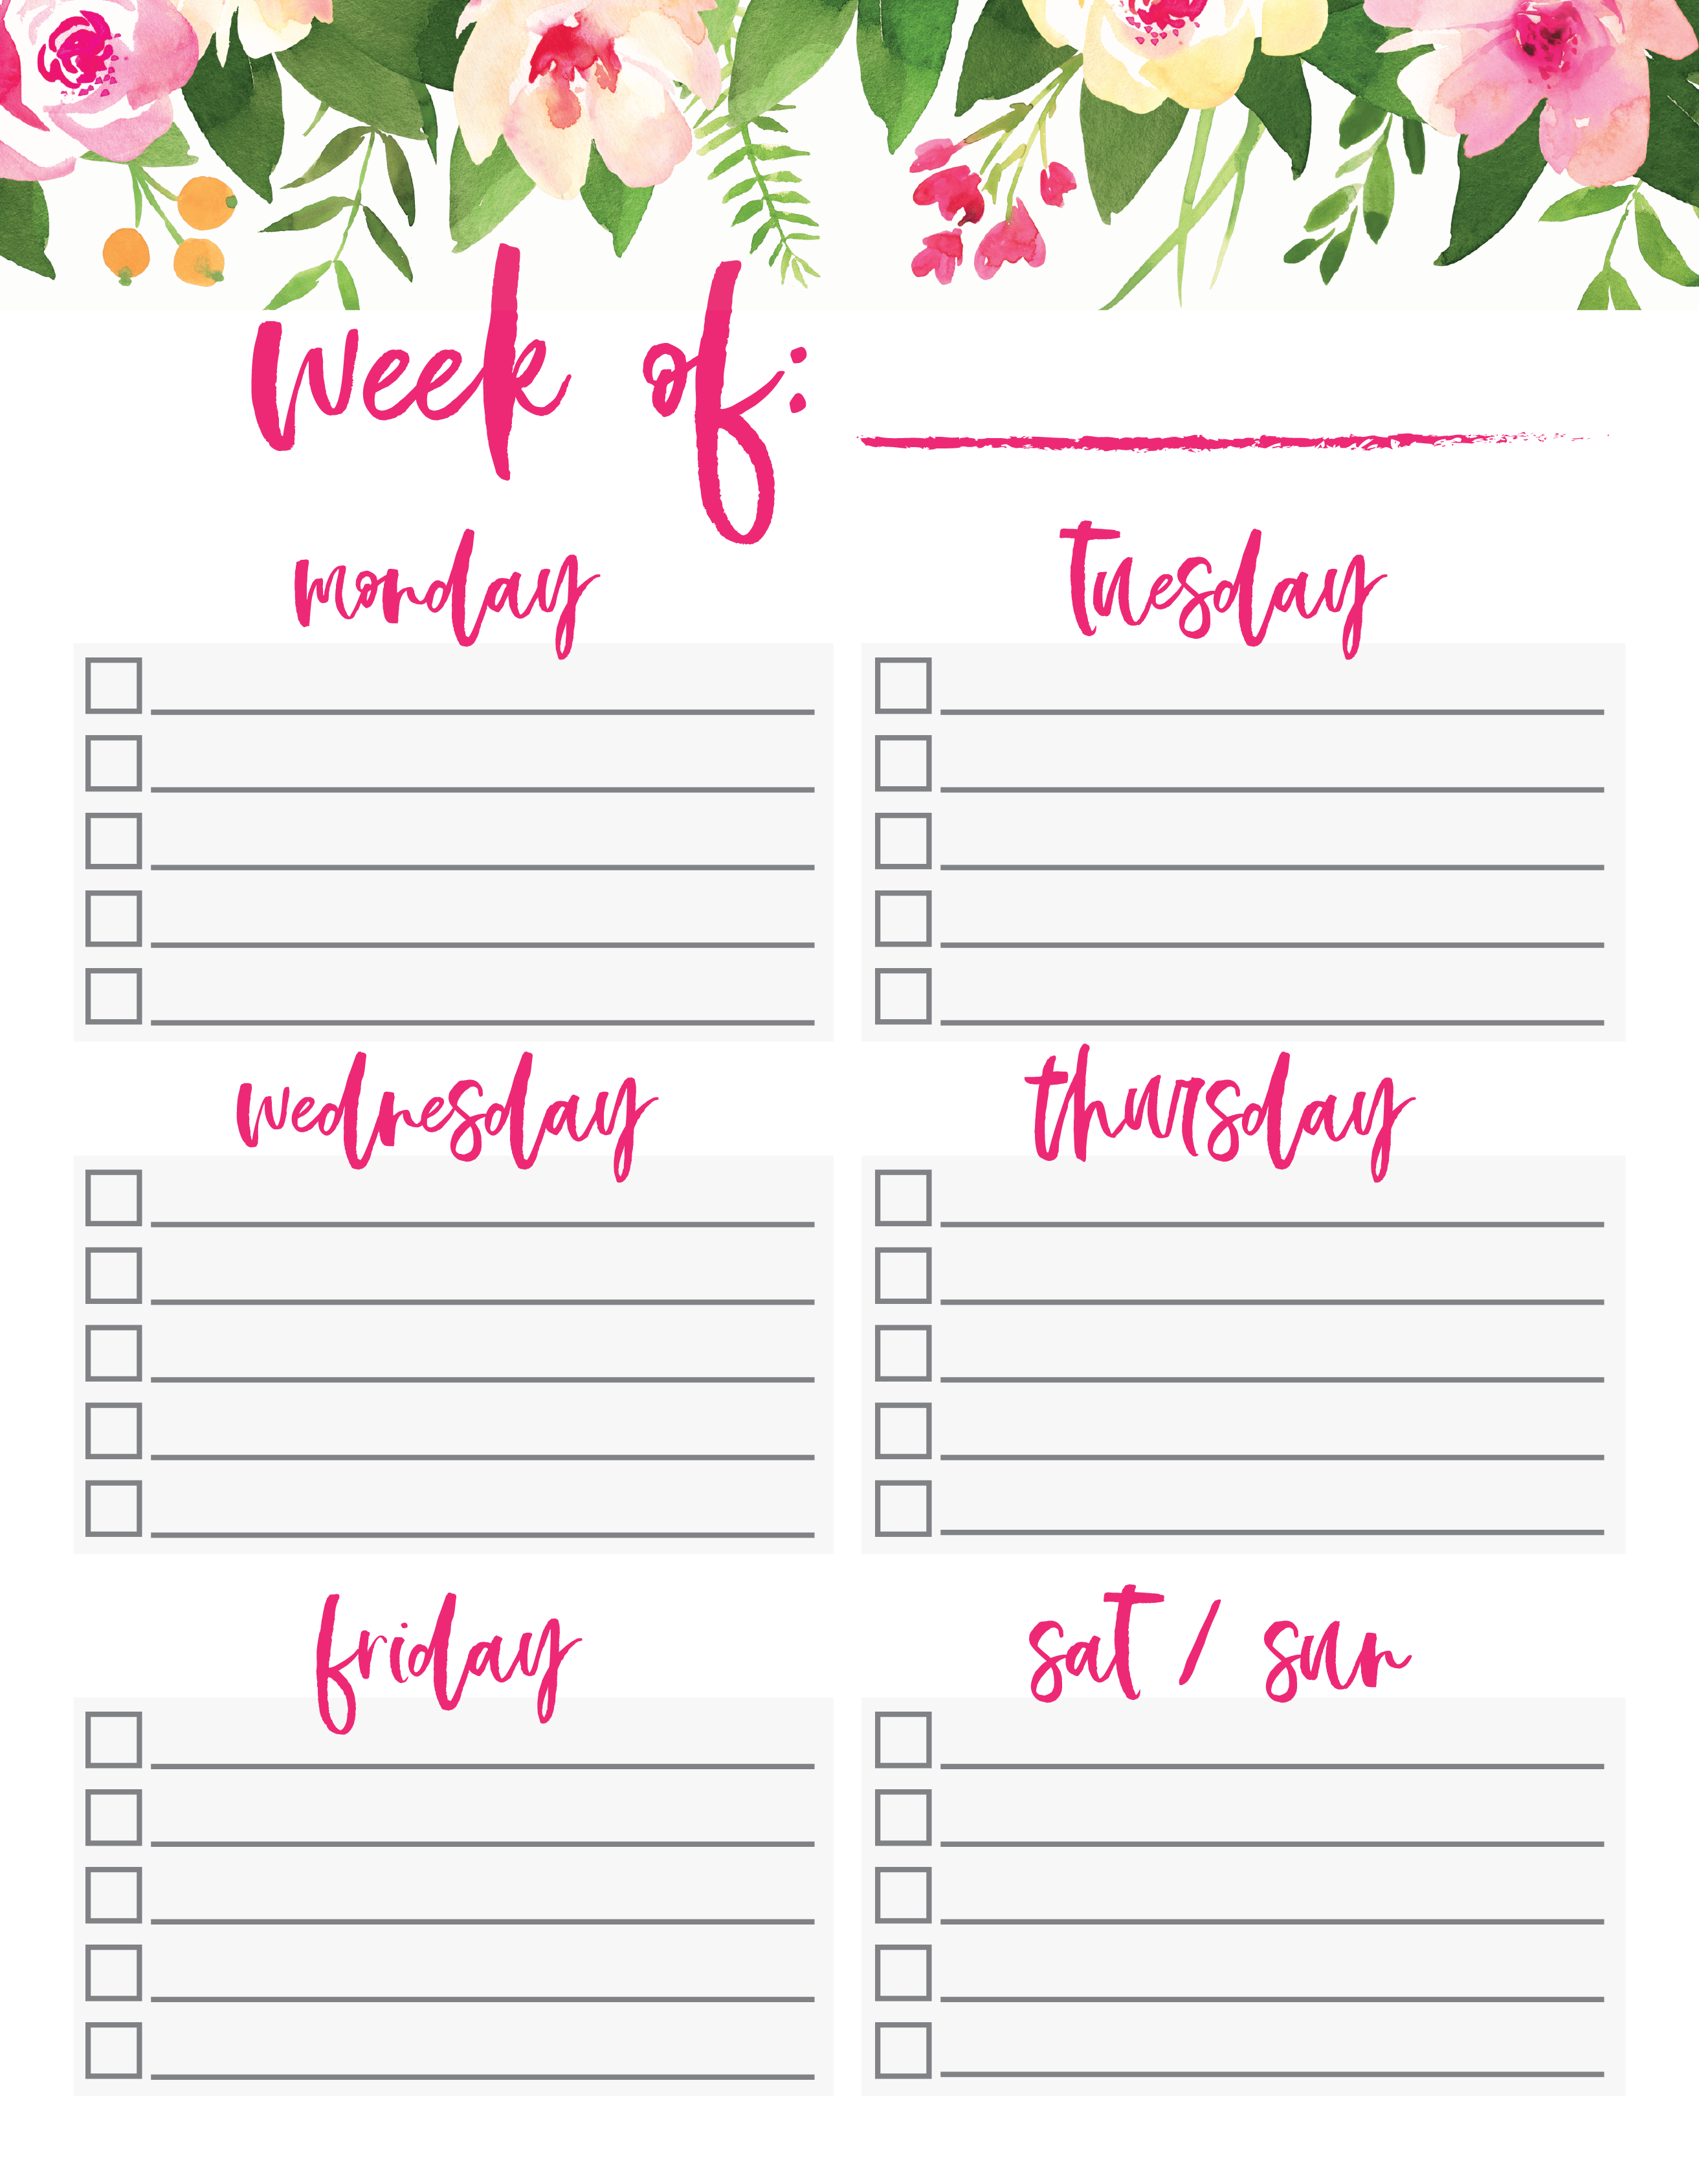 What Do You Need To Do This Week Download This